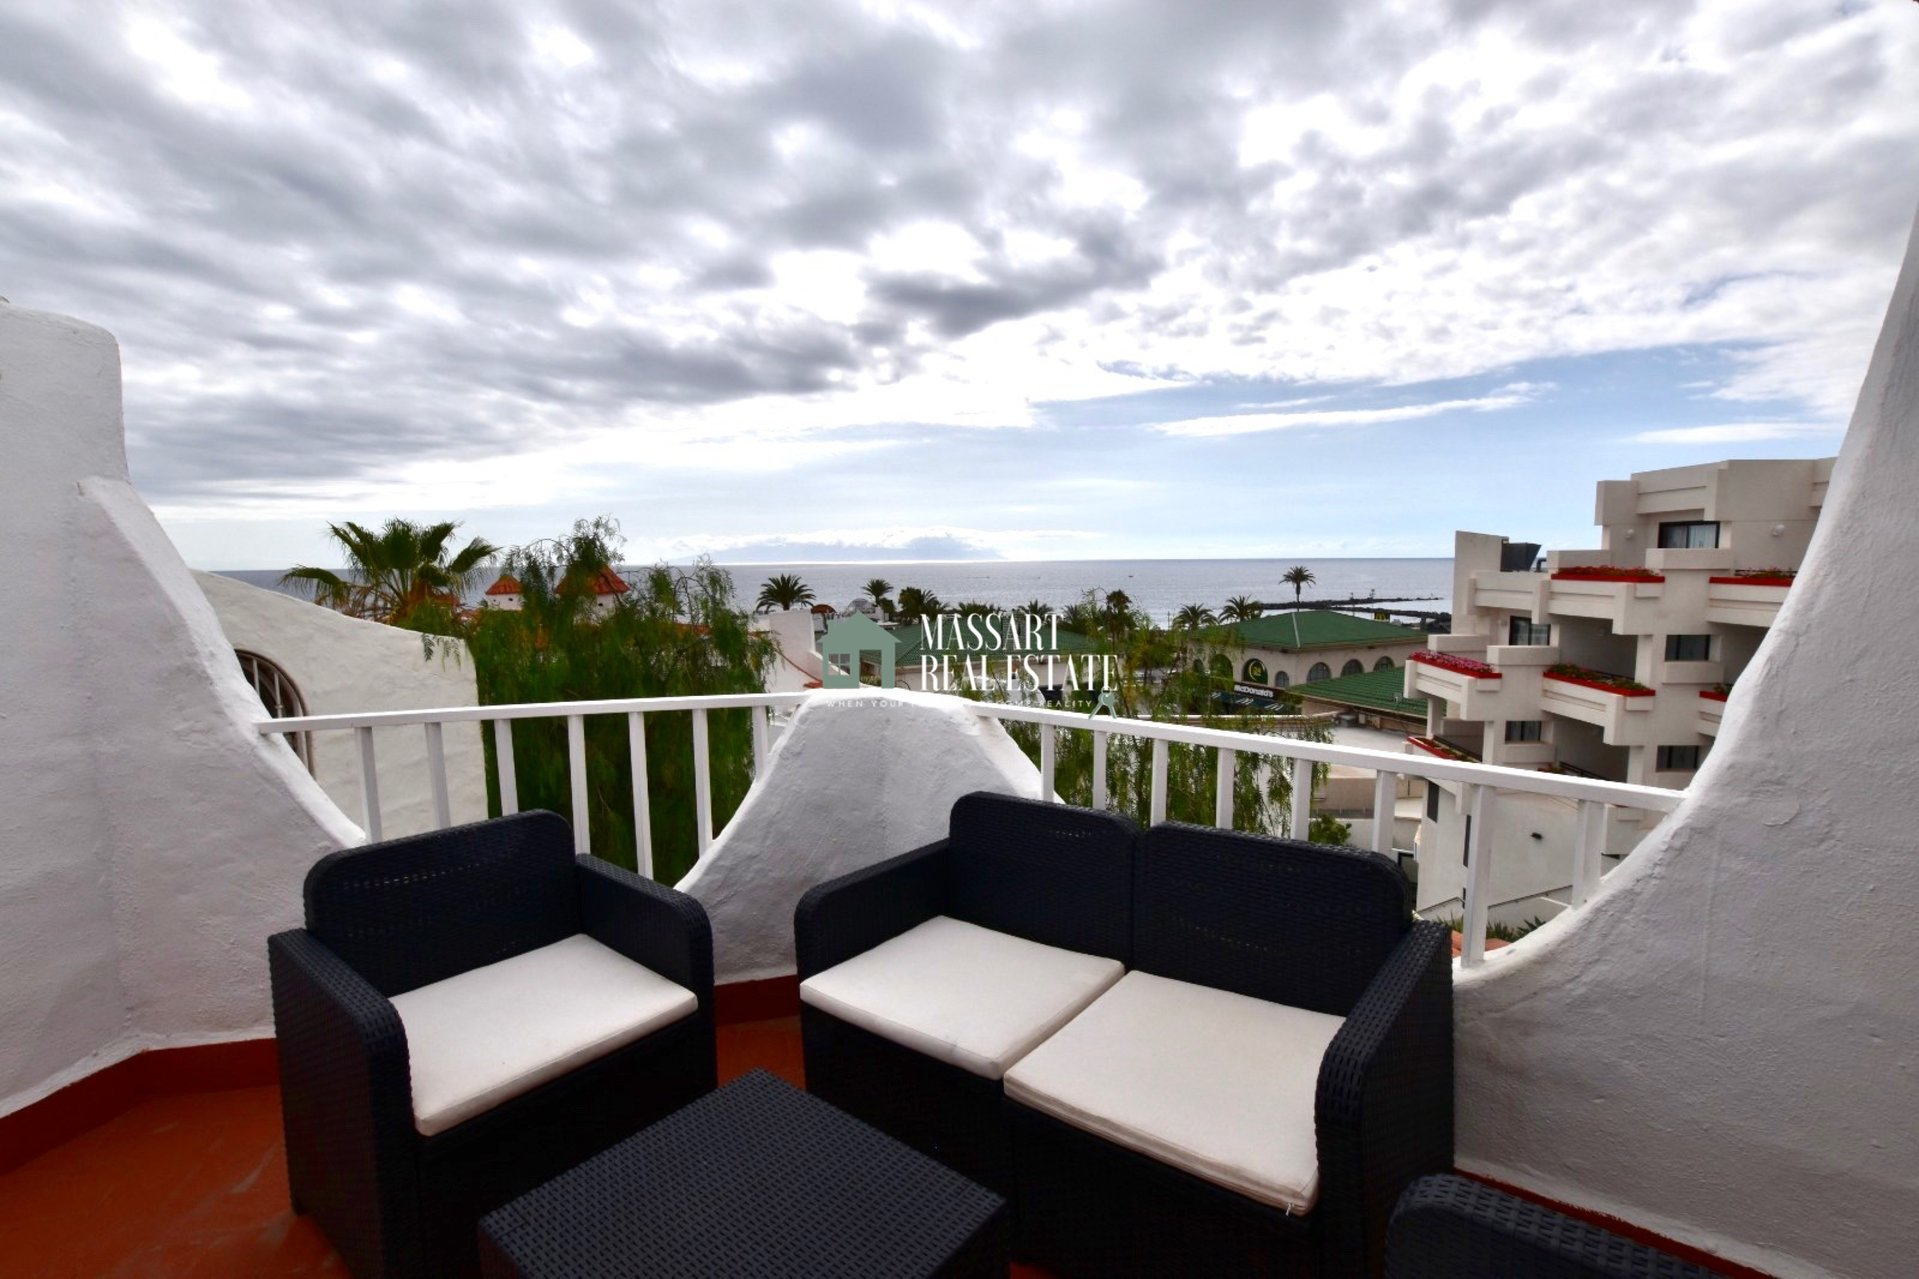 FOR RENT - Furnished triplex of 65 m2 in Playa de las Américas, in the residential complex Las Tortugas ... just 1 minute walk from the beach!